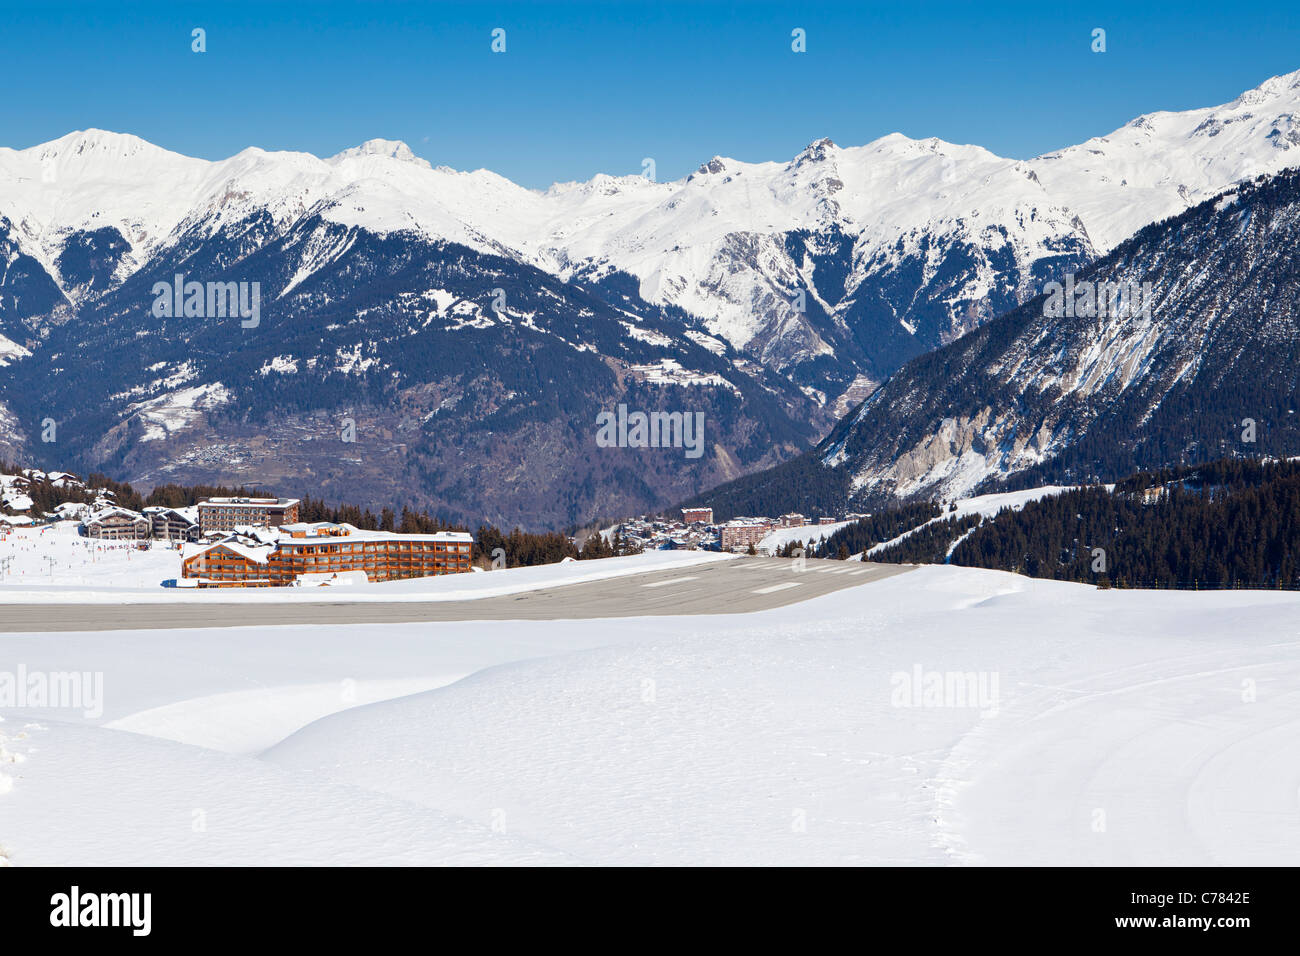 Altiport runway, Courchevel, Savoie, Rhone-Alpes, France. - Stock Image